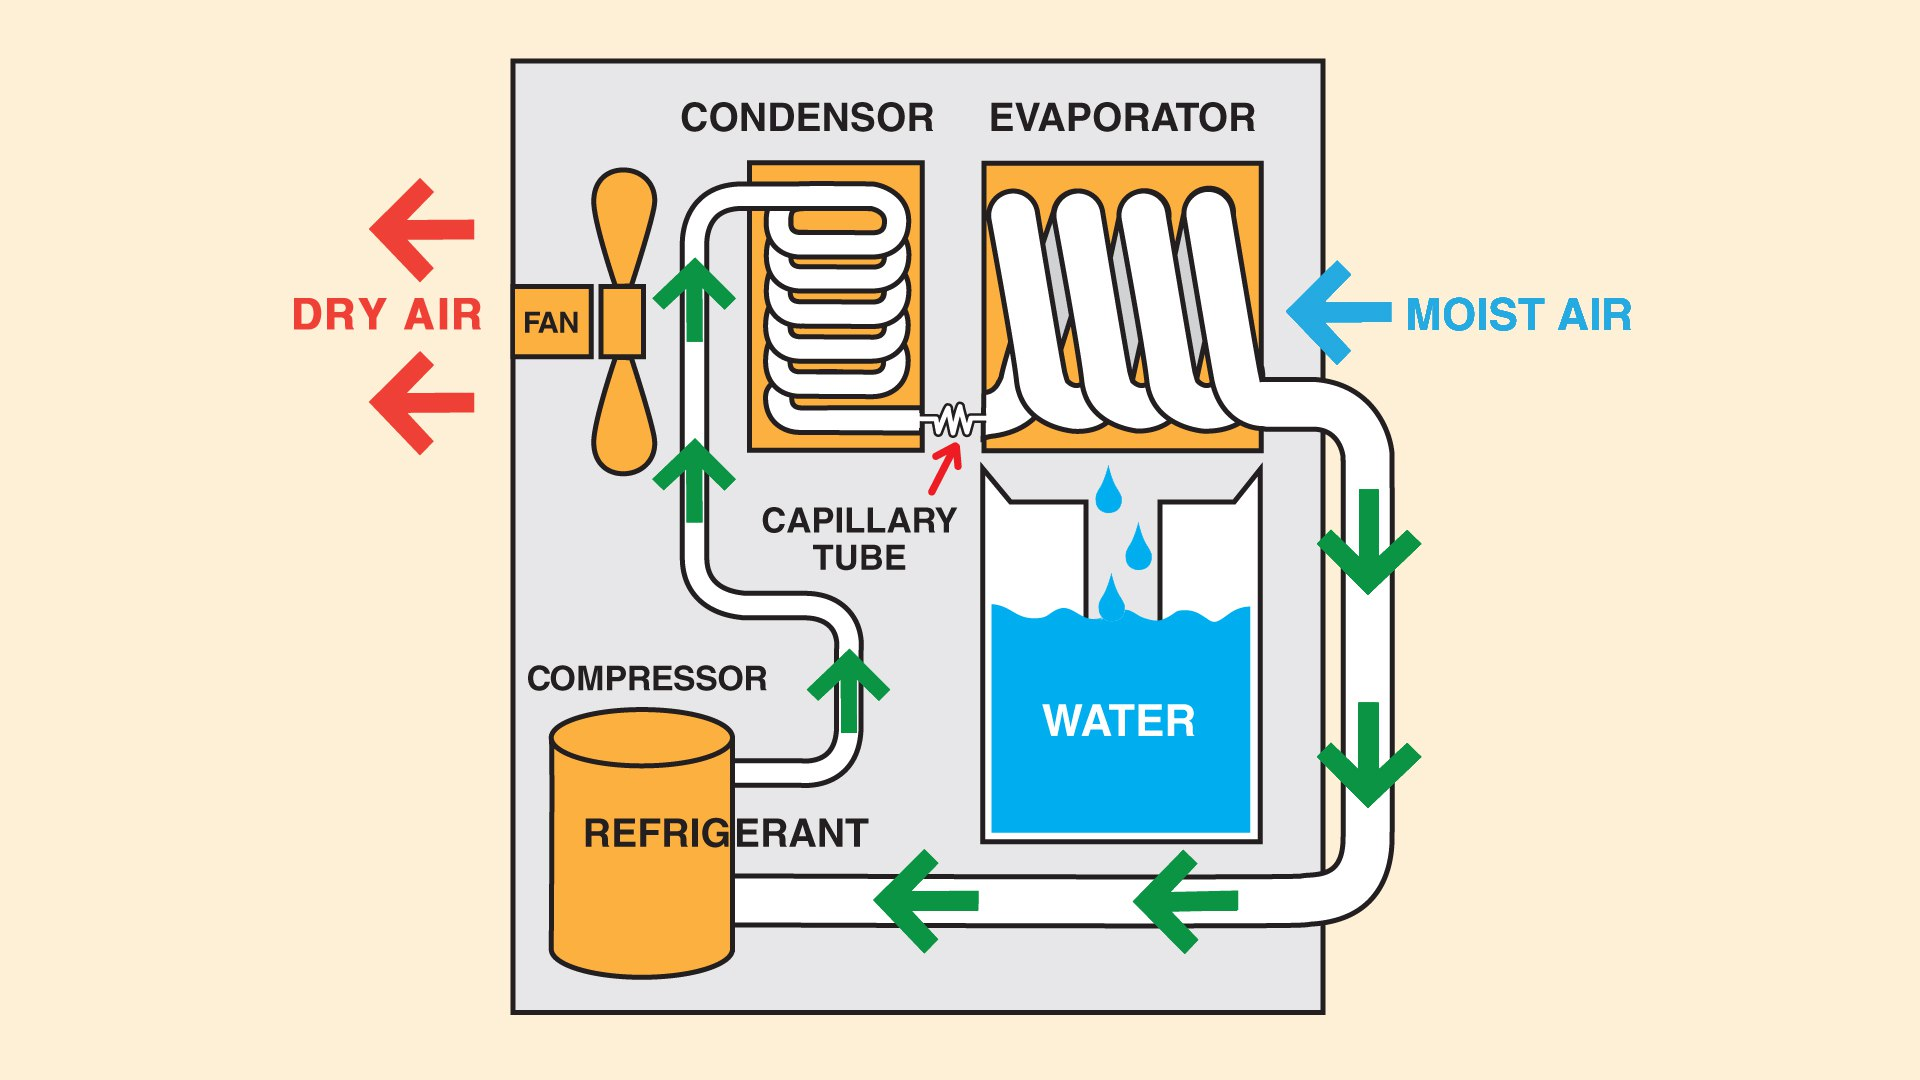 Perfect Diagram Of A How A Dehumidifier Works In The Context Of A Houseu0027s Basement.